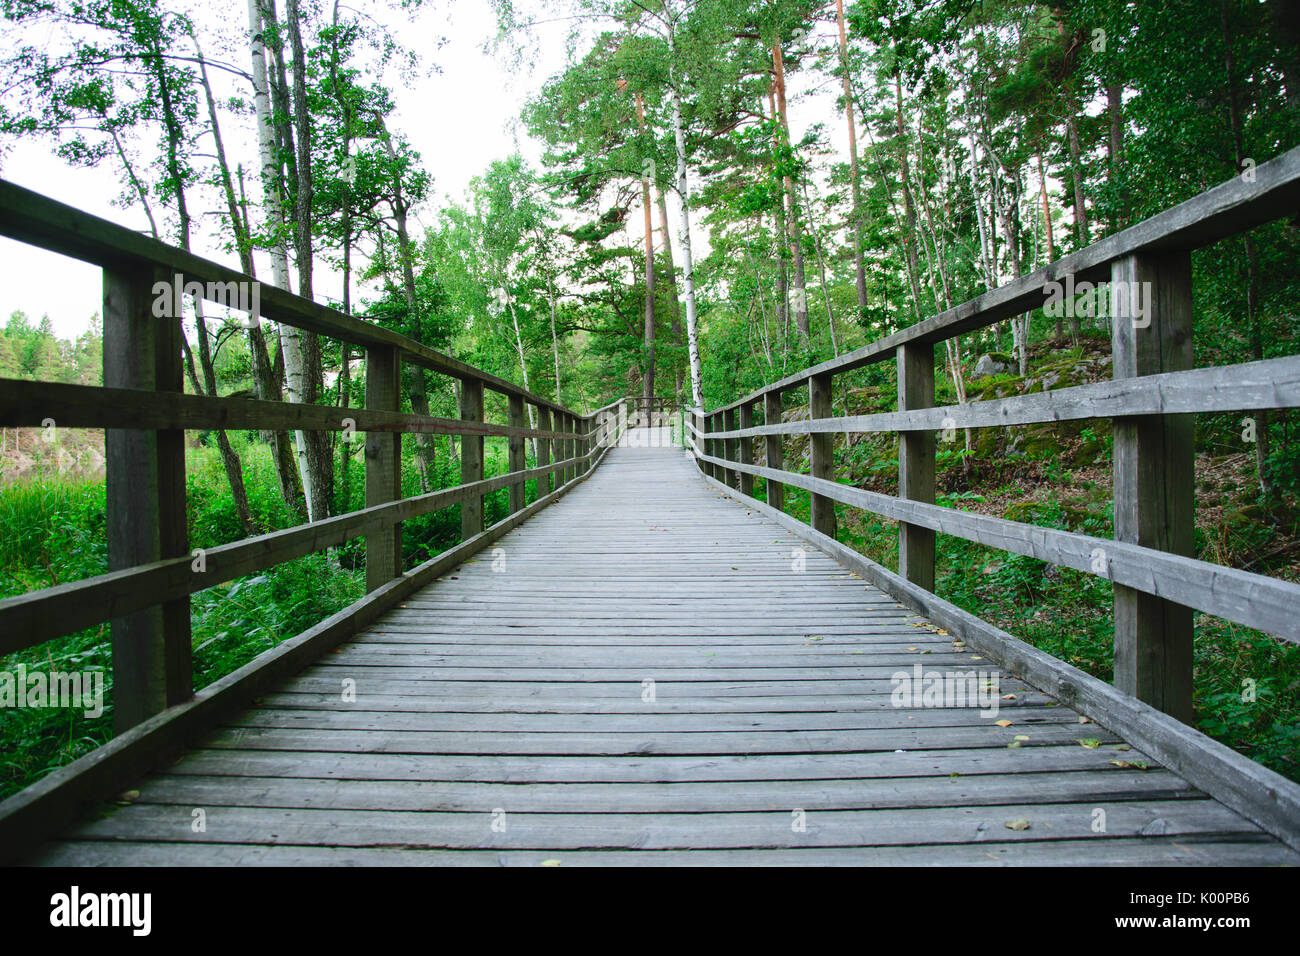 Wooden boardwalk. Taken with Nikon D5300 - Stock Image